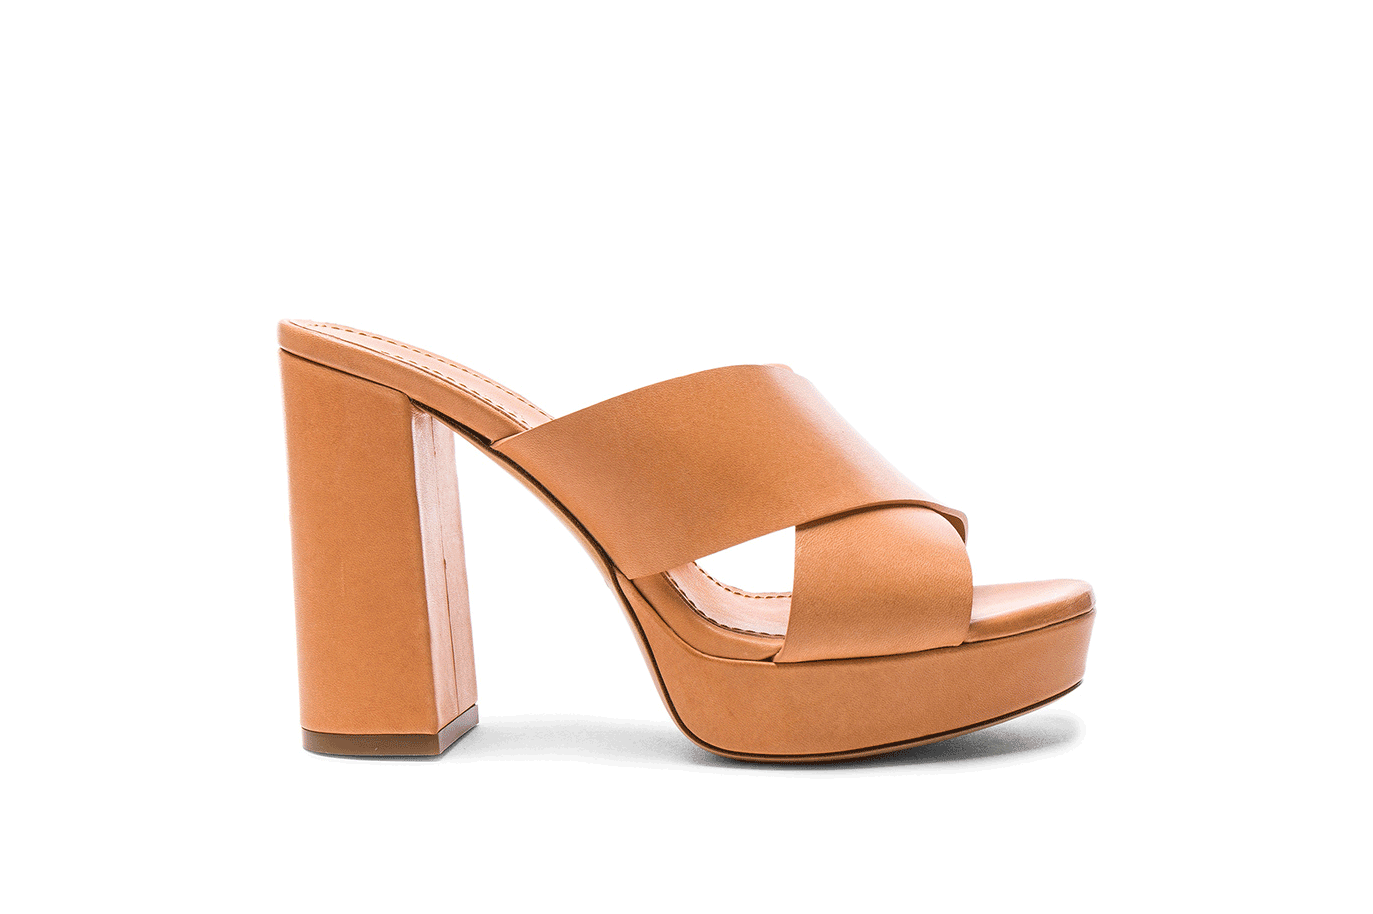 Mansur Gavriel Leather 100mm x Strap Heels